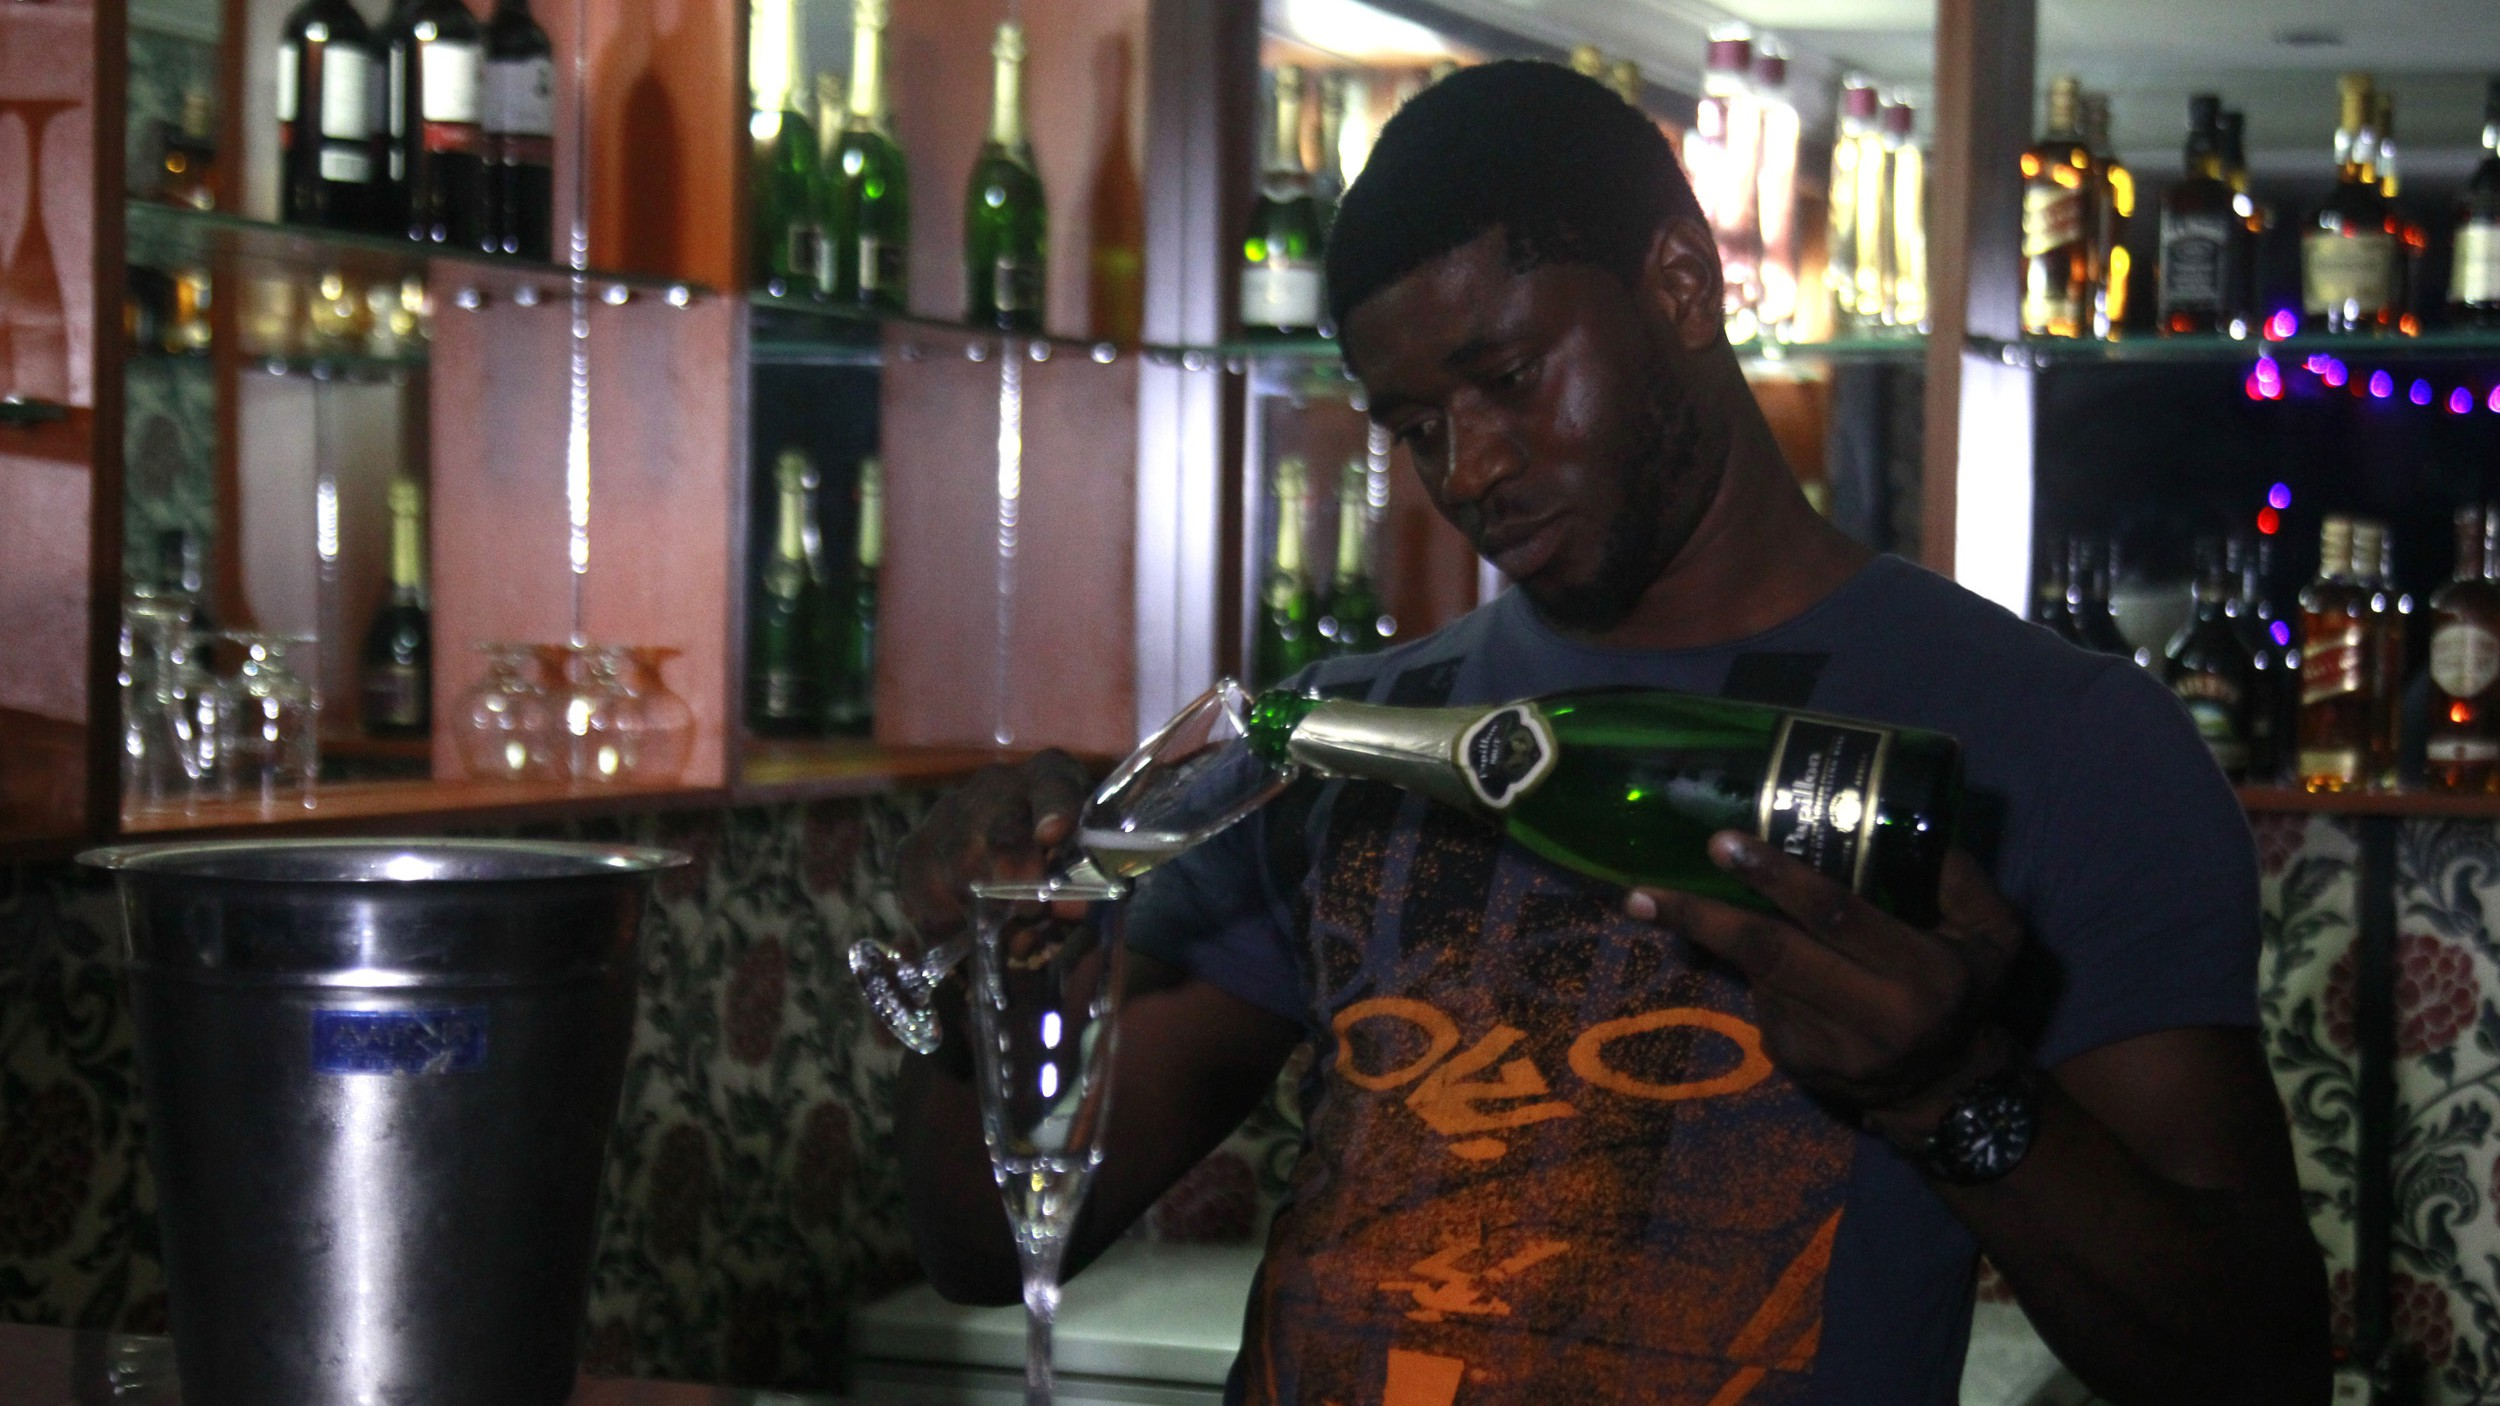 Peter Ode, 27, a mini-bar owner, serves champagne in his bar on McCarthy Street in Lagos June 12, 2013. Not so long ago, for luxury goods retailers the African market boiled down to a tiny elite, in some cases just a corrupt ruling clique. Not any more. Although millions of Africans remain stuck in crushing poverty, disposable incomes are on the up. As economies boom, the elite circles are widening and a growing middle class is aspiring to finer things. Picture taken June 12, 2013. REUTERS/Akintunde Akinleye (NIGERIA - Tags: BUSINESS) - RTX10NMB